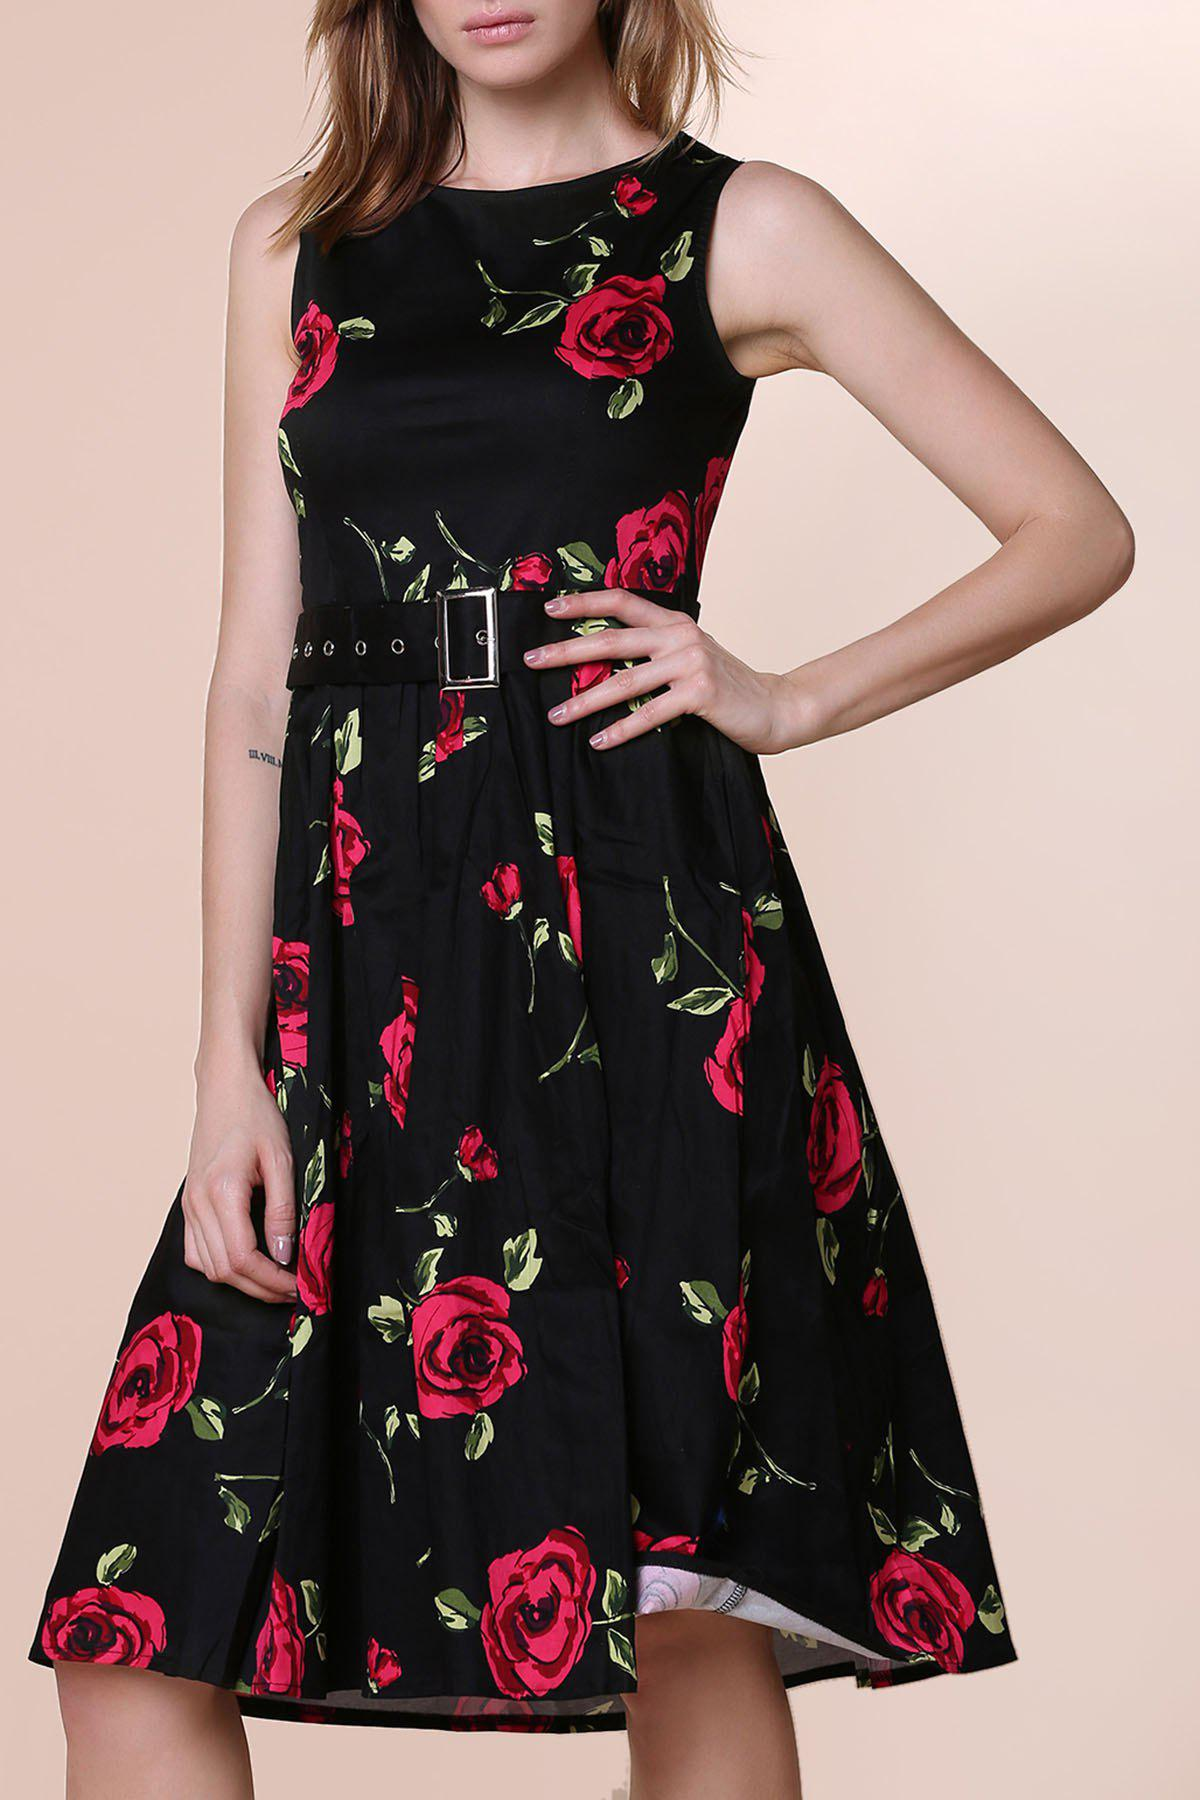 Best Retro Style Round Neck Sleeveless Roses Print Women's Ball Gown Dress